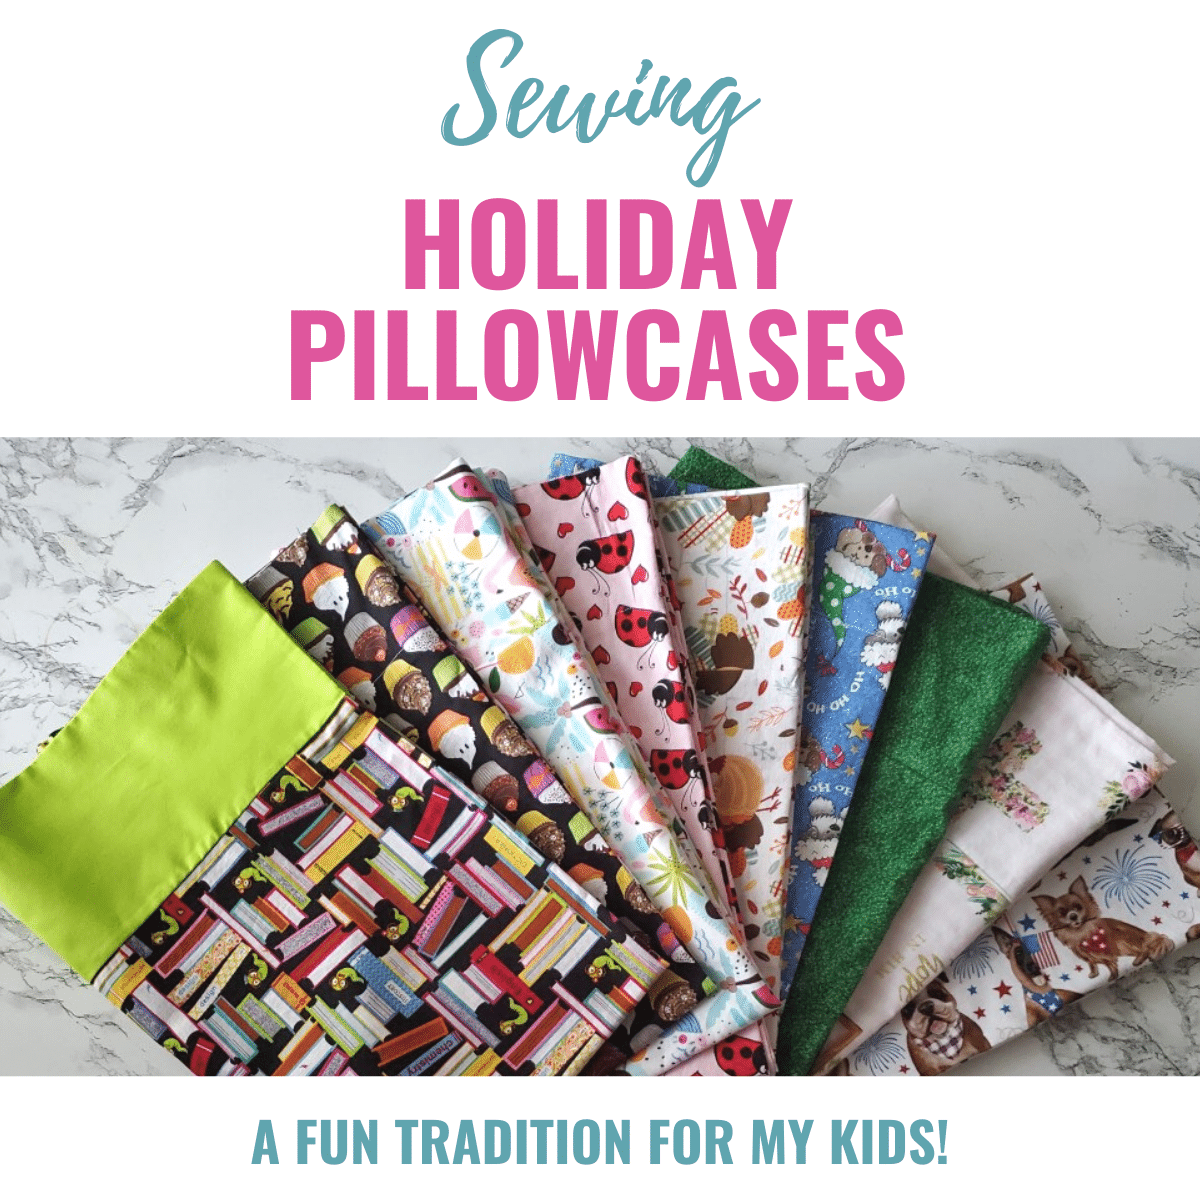 Holiday Pillowcases for Kids Tradition – Sewing for Every Season